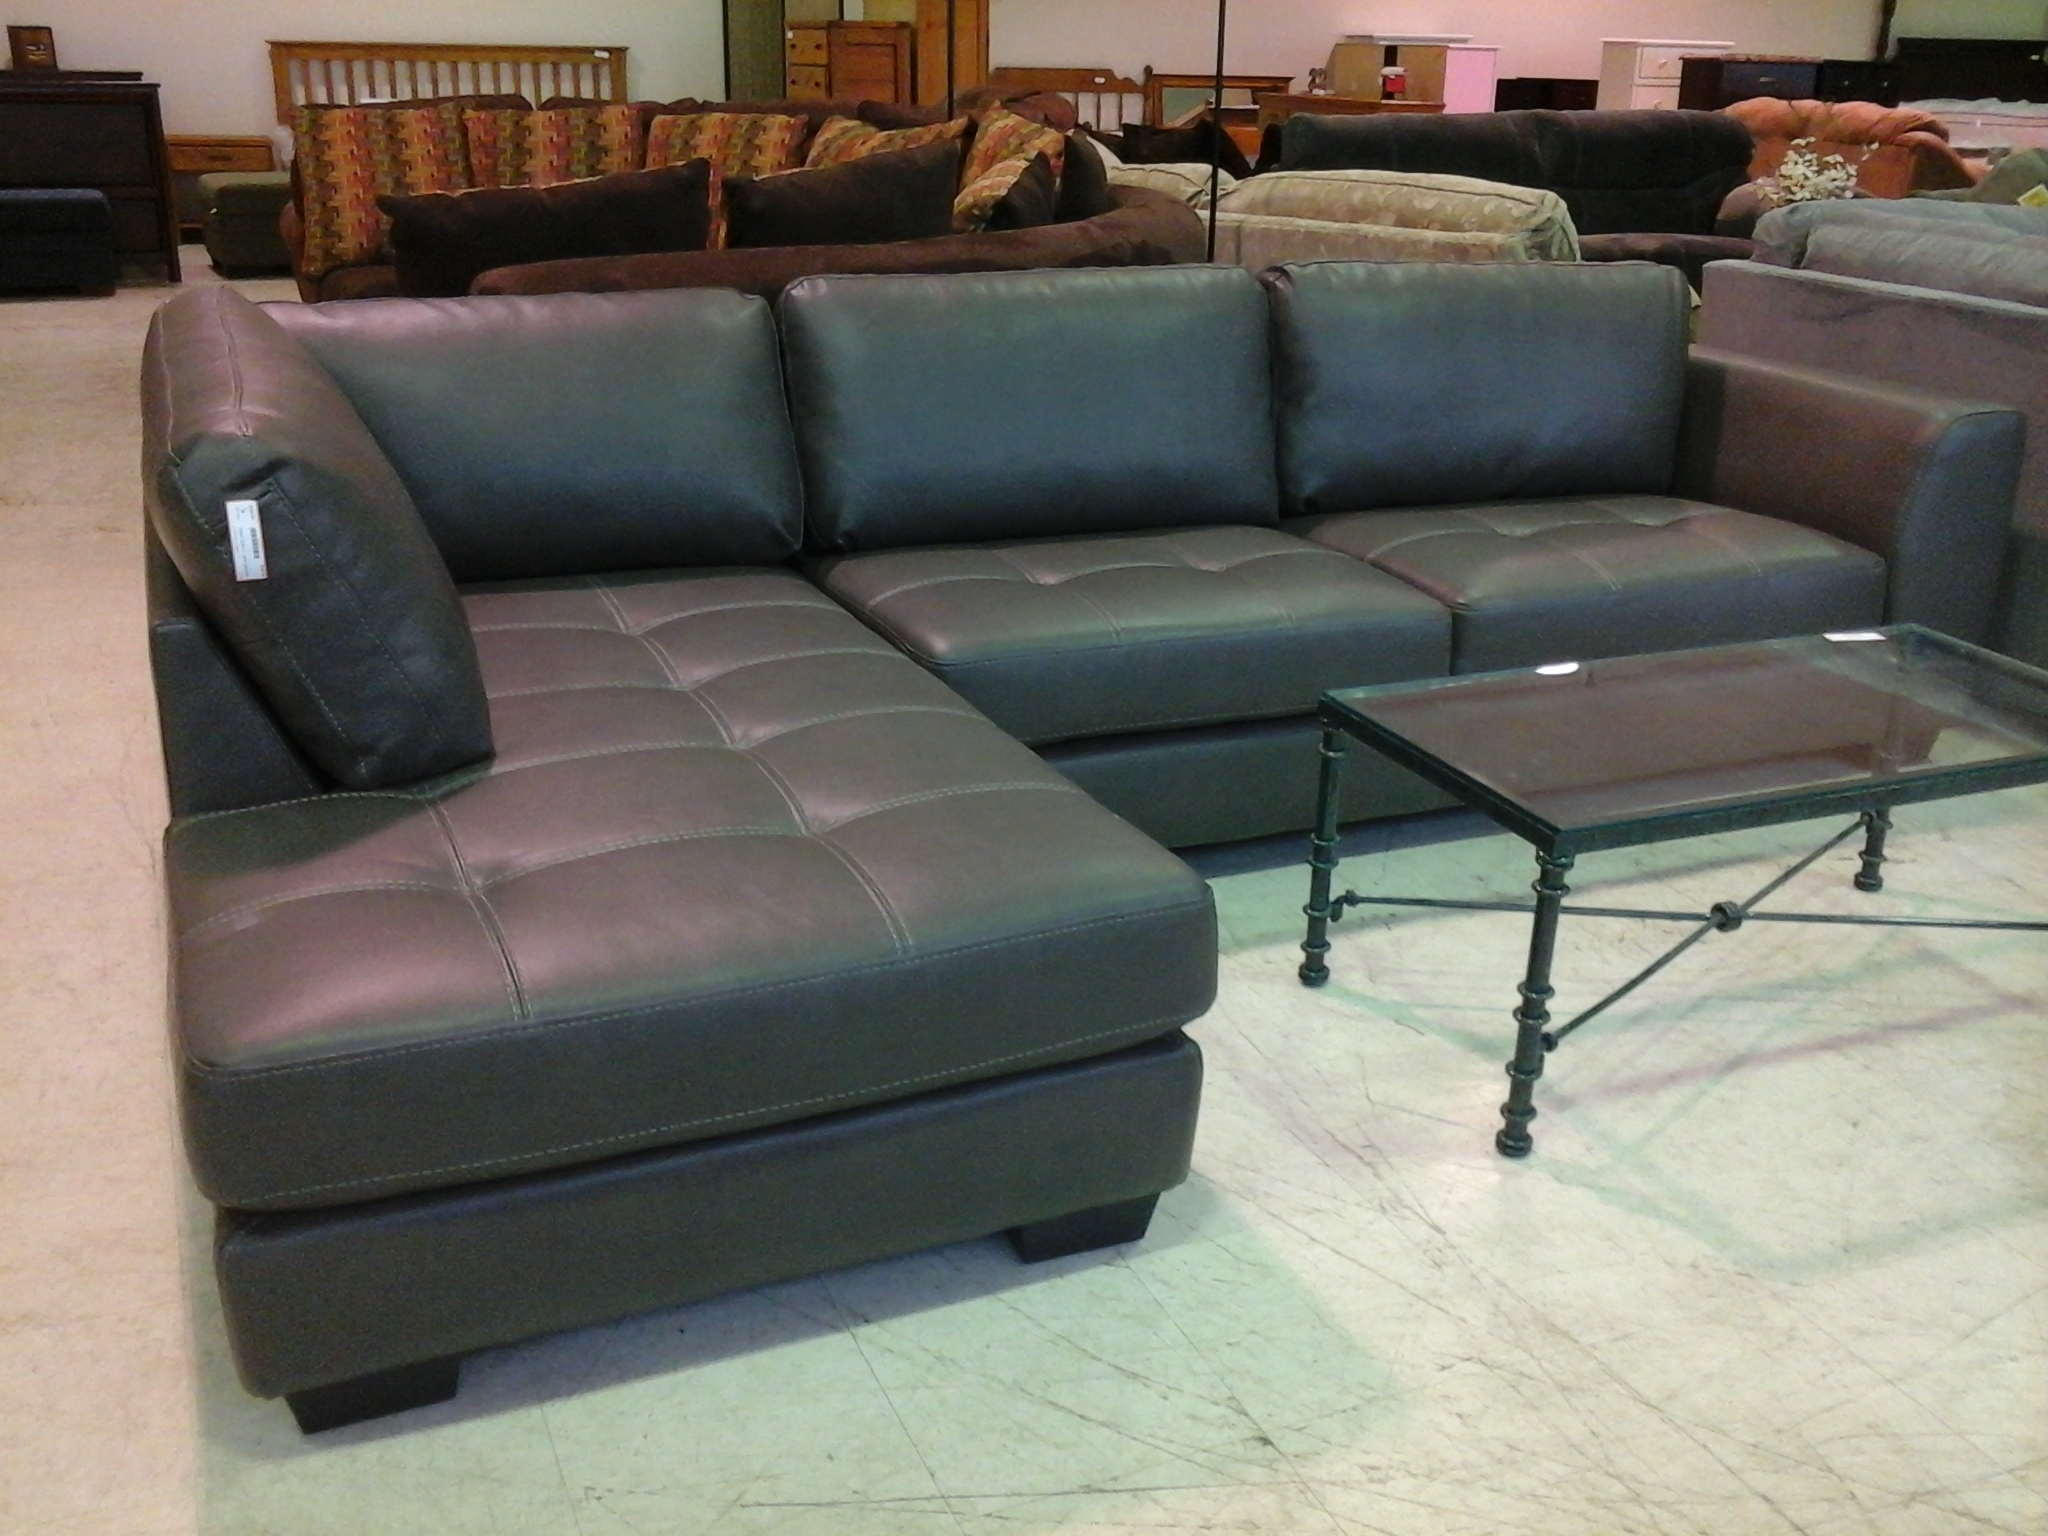 Most Recently Released Living Room Design: Classy Black Leather Sectional For Elegant Within Black Leather Sectionals With Chaise (View 10 of 15)